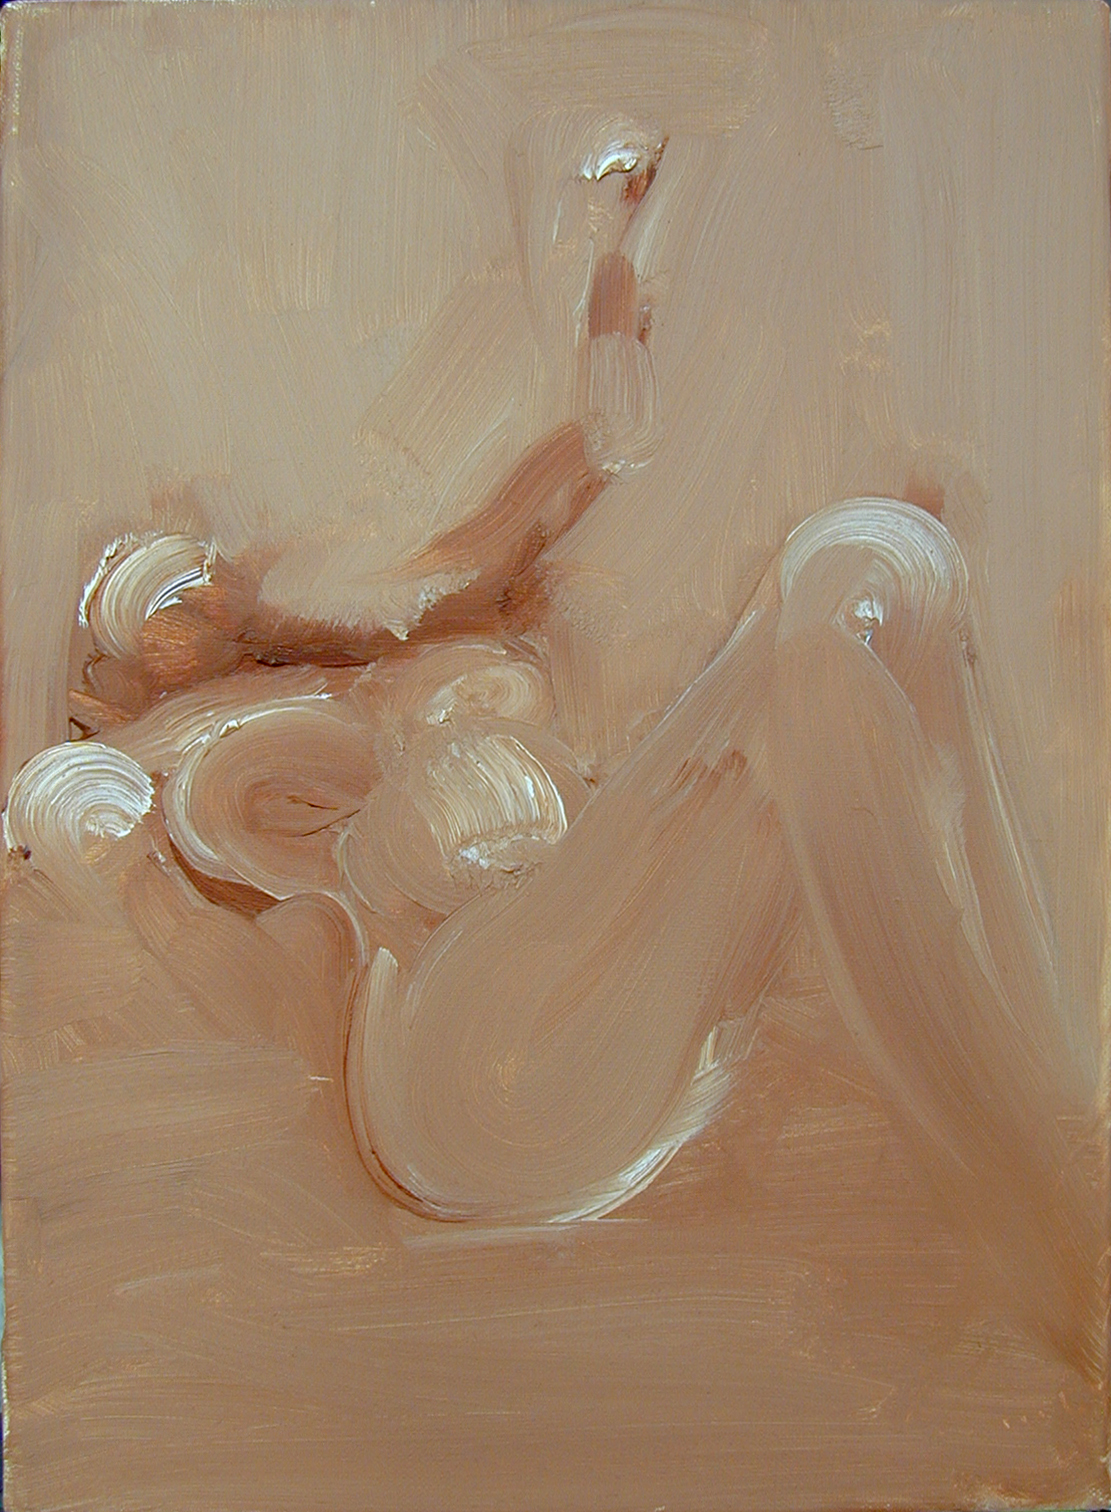 MINIATURE I, 2003, oil on canvas, 50X35cm, 20X14''